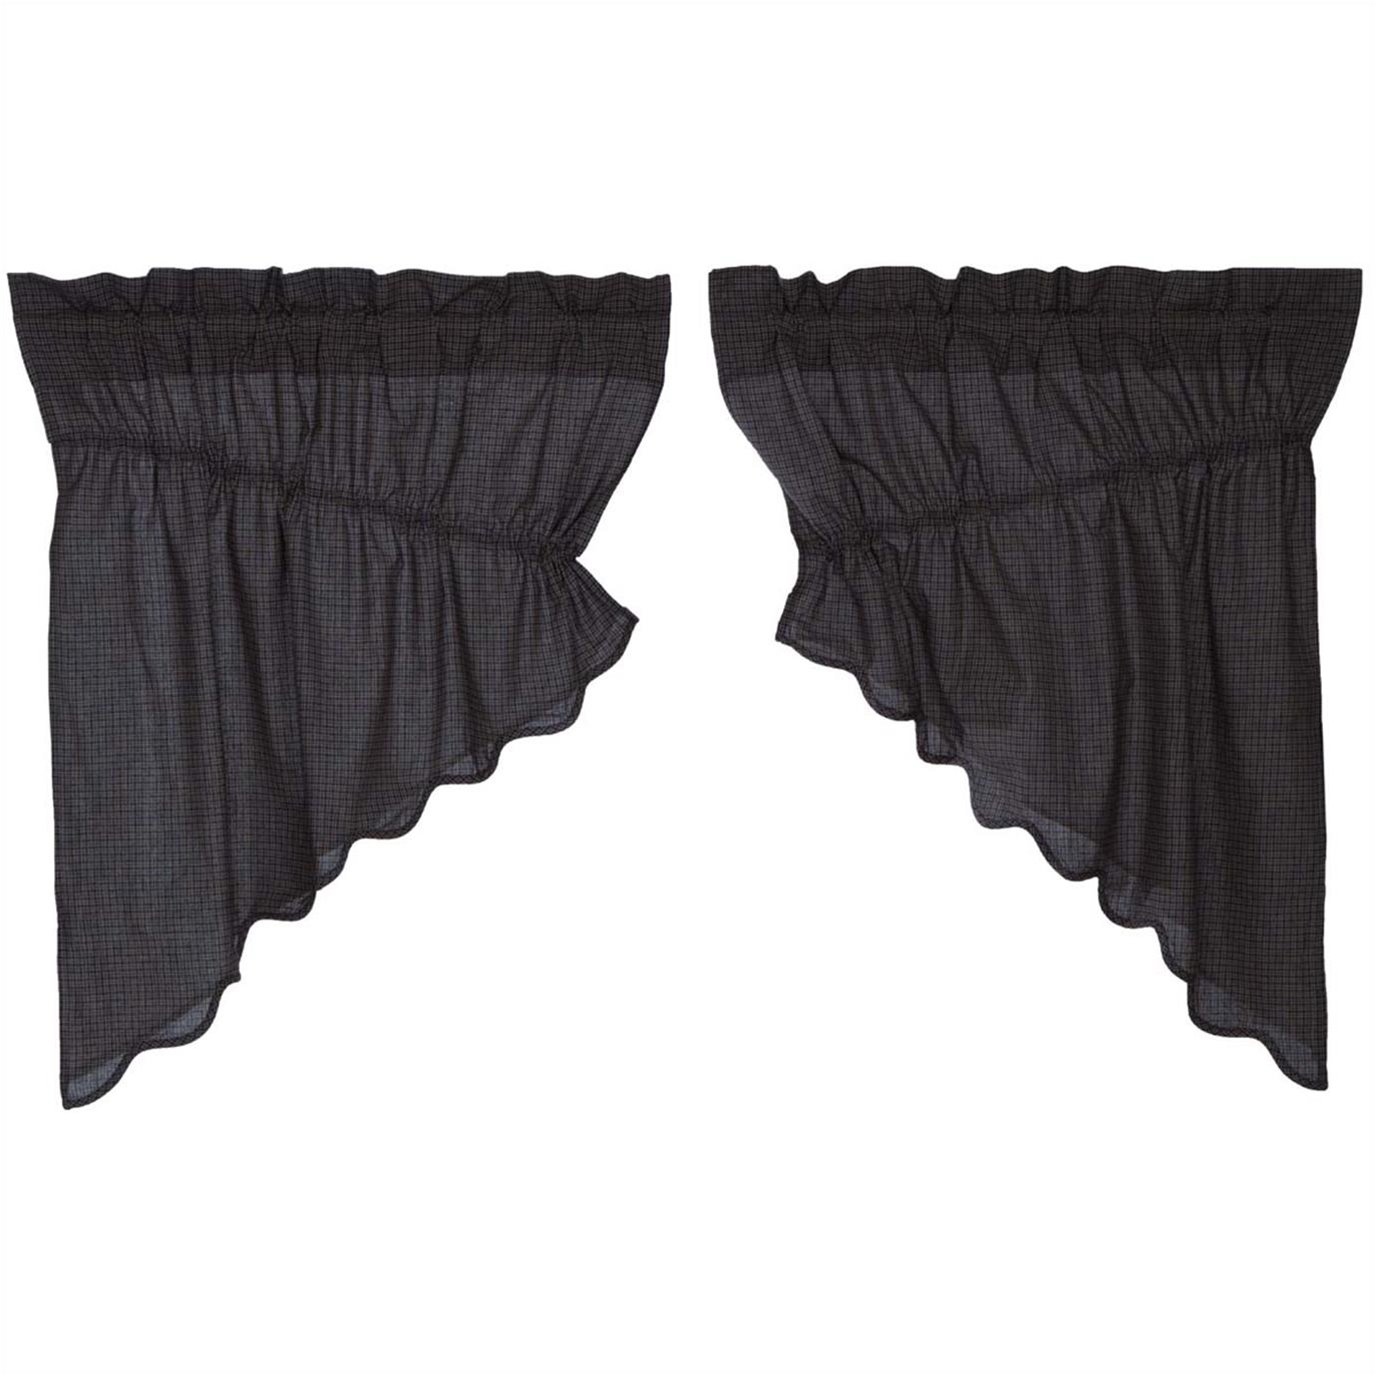 Arlington Prairie Swag Scalloped Set of 2 36x36x18